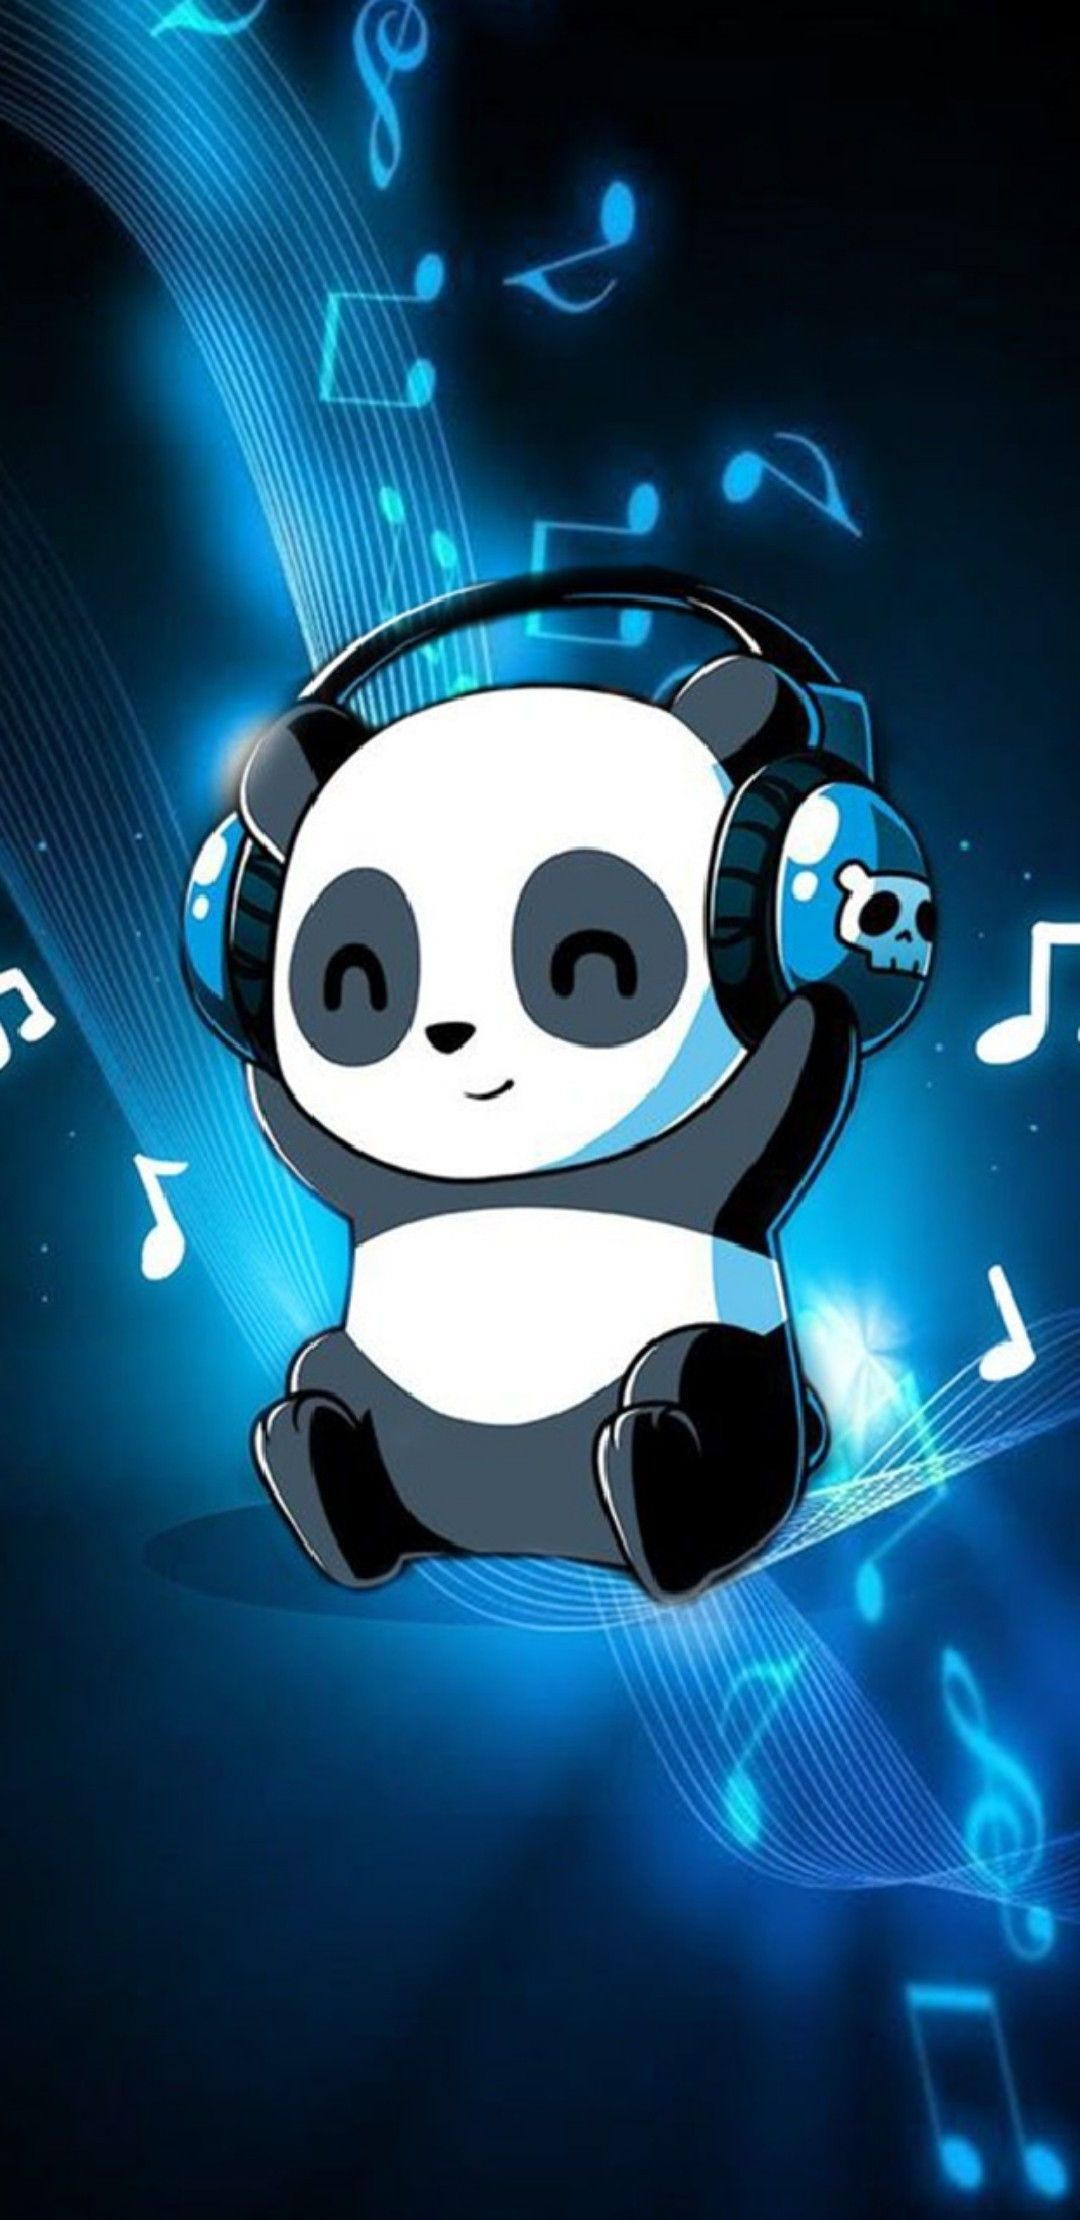 Panda Wallpaper For Mobile Phone Tablet Desktop Computer And Other Devices Hd And 4k Wallpapers In 2021 Cute Panda Wallpaper Panda Wallpapers Cute Cartoon Wallpapers